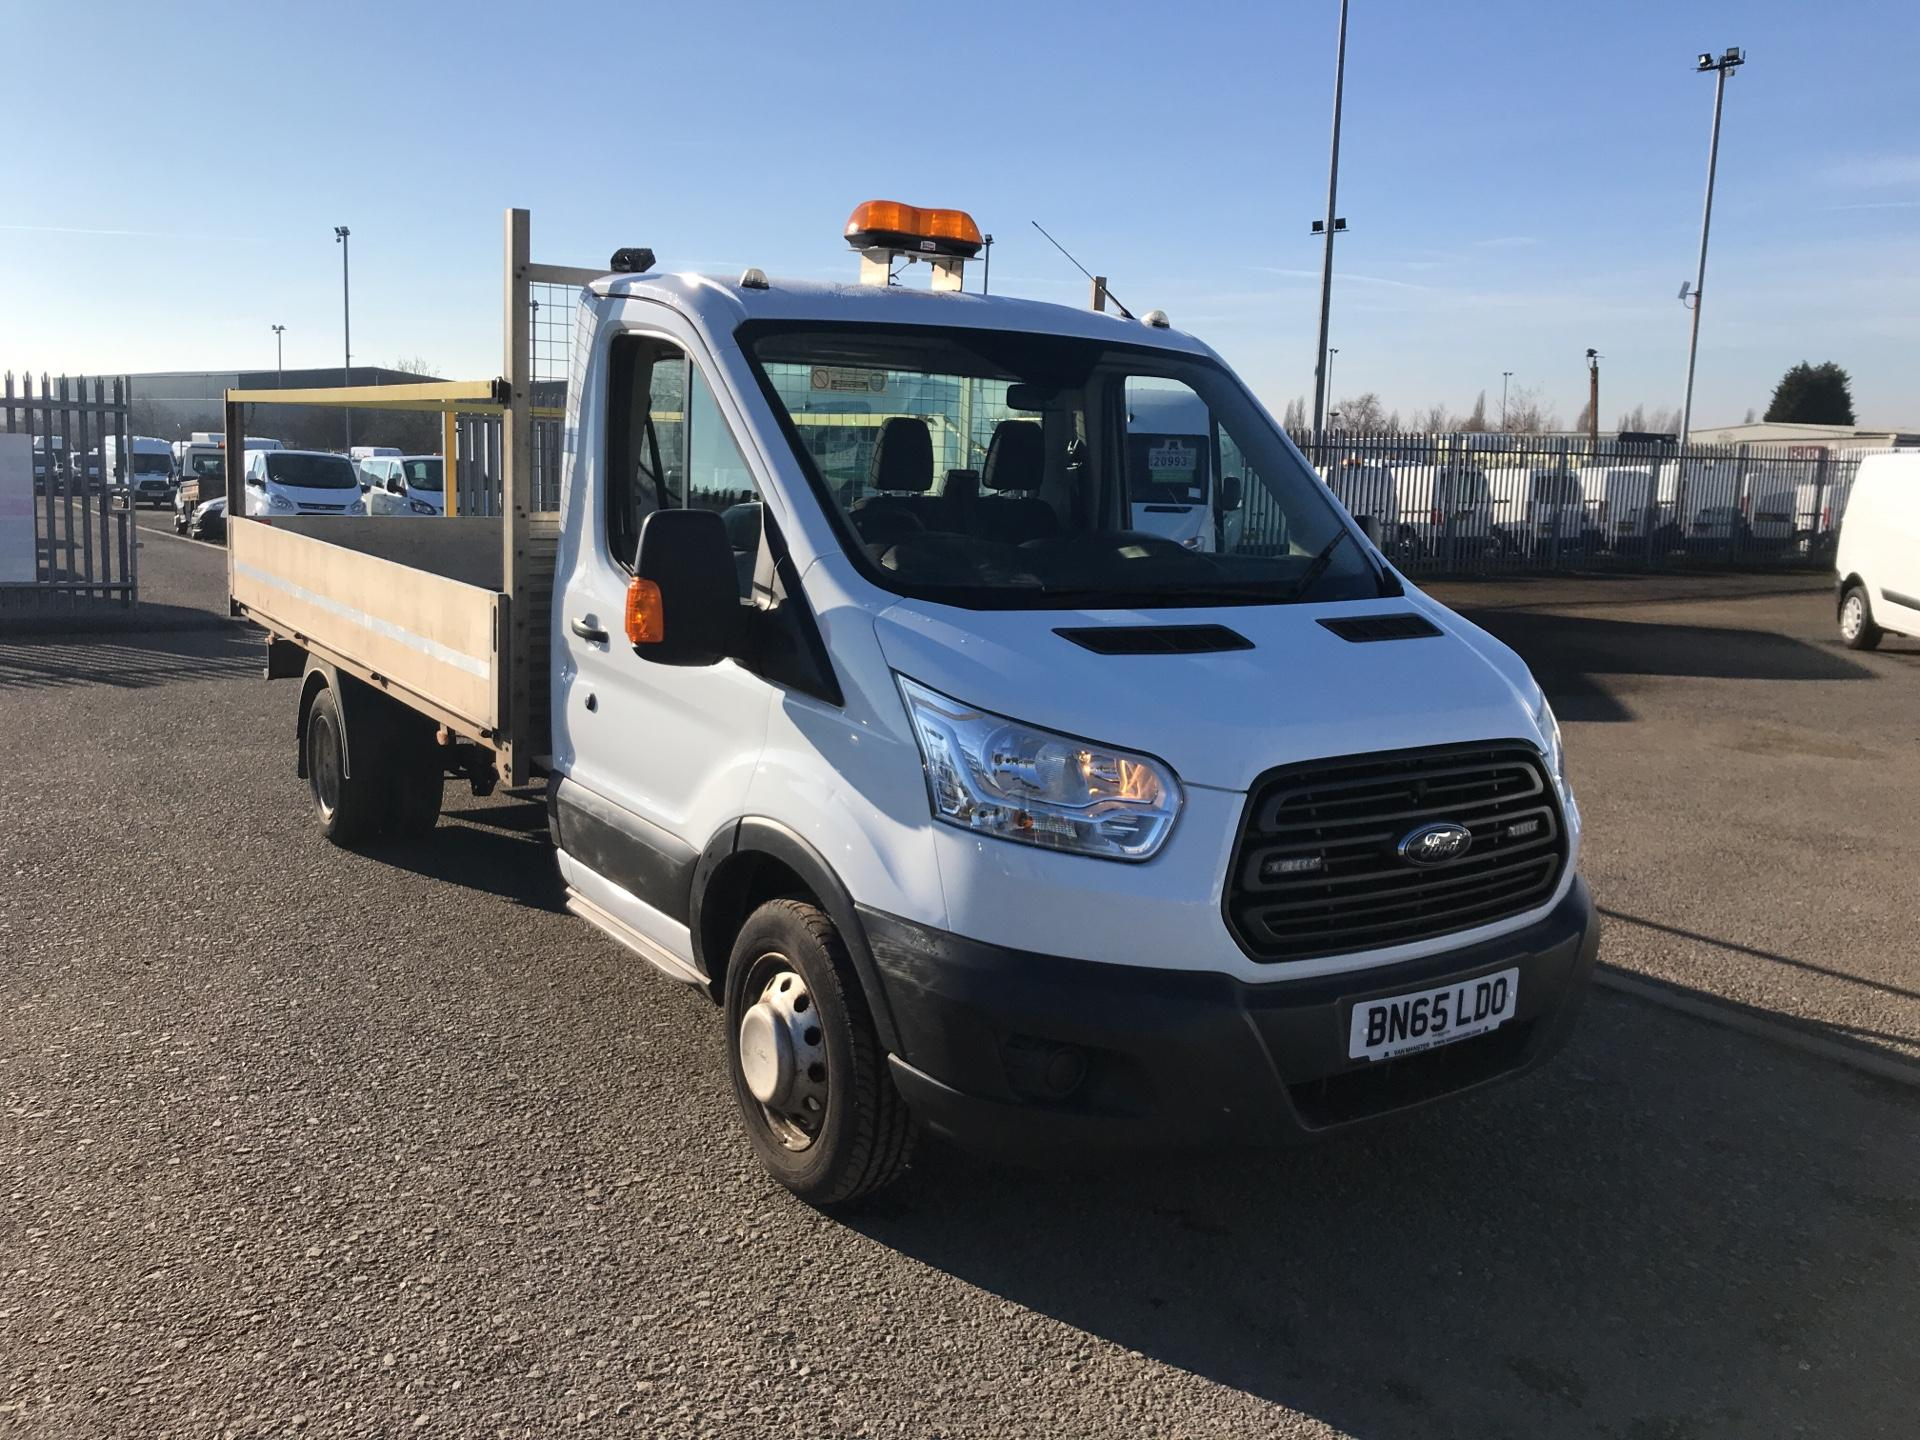 2015 Ford Transit 350 L4 DROP SIDE 125PS EURO 5 (BN65LDO) Image 1